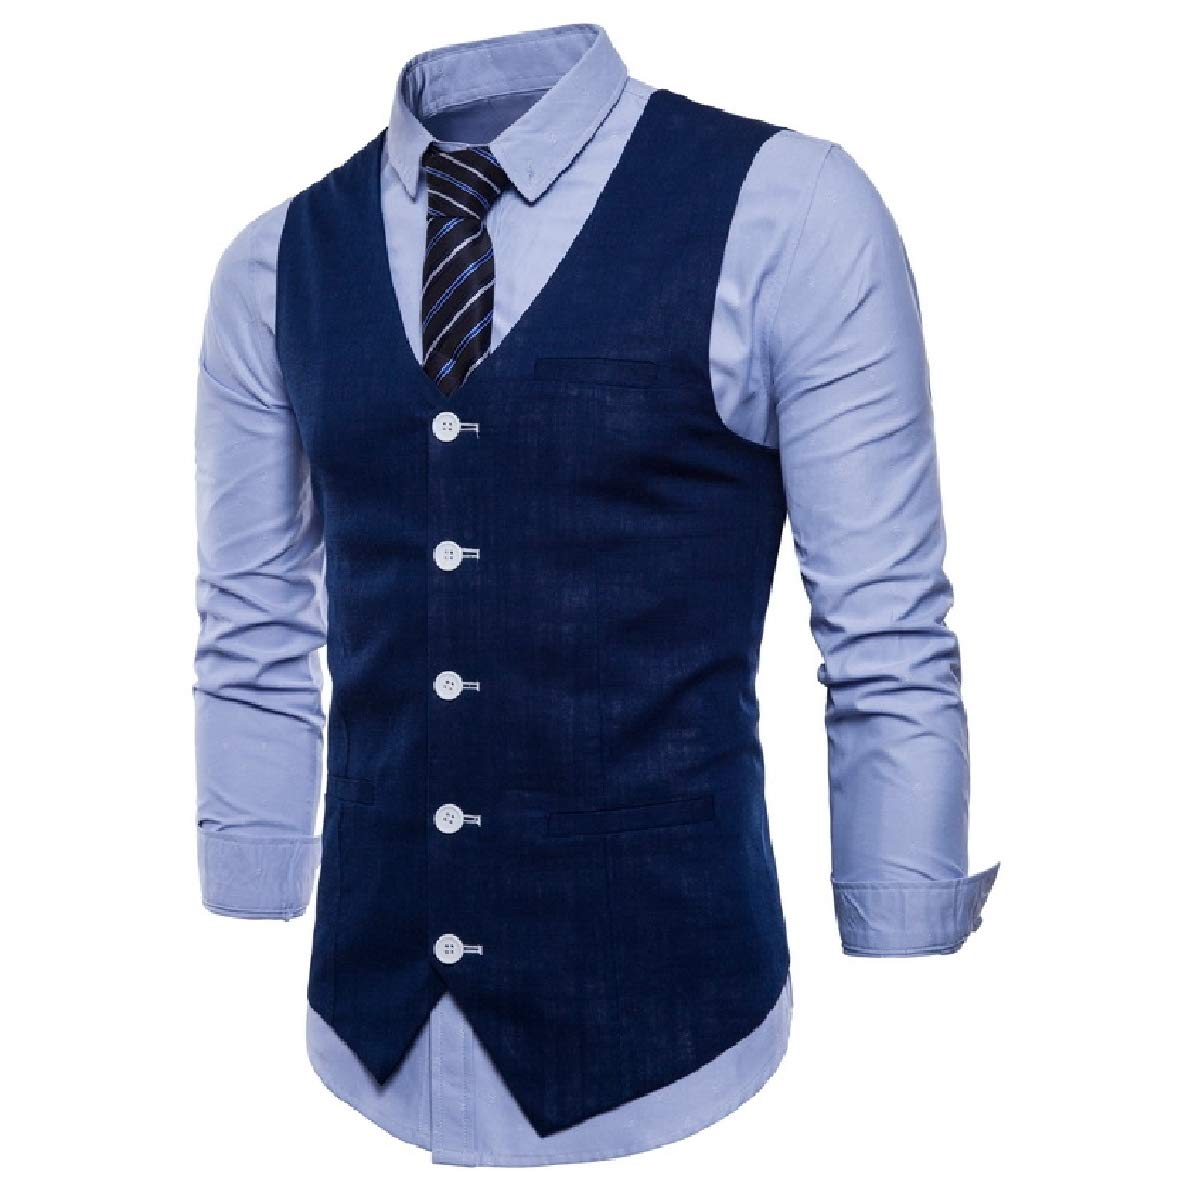 XiaoShop Men Big and Tall Single Breasted Slim V-Neck Business Waistcoat